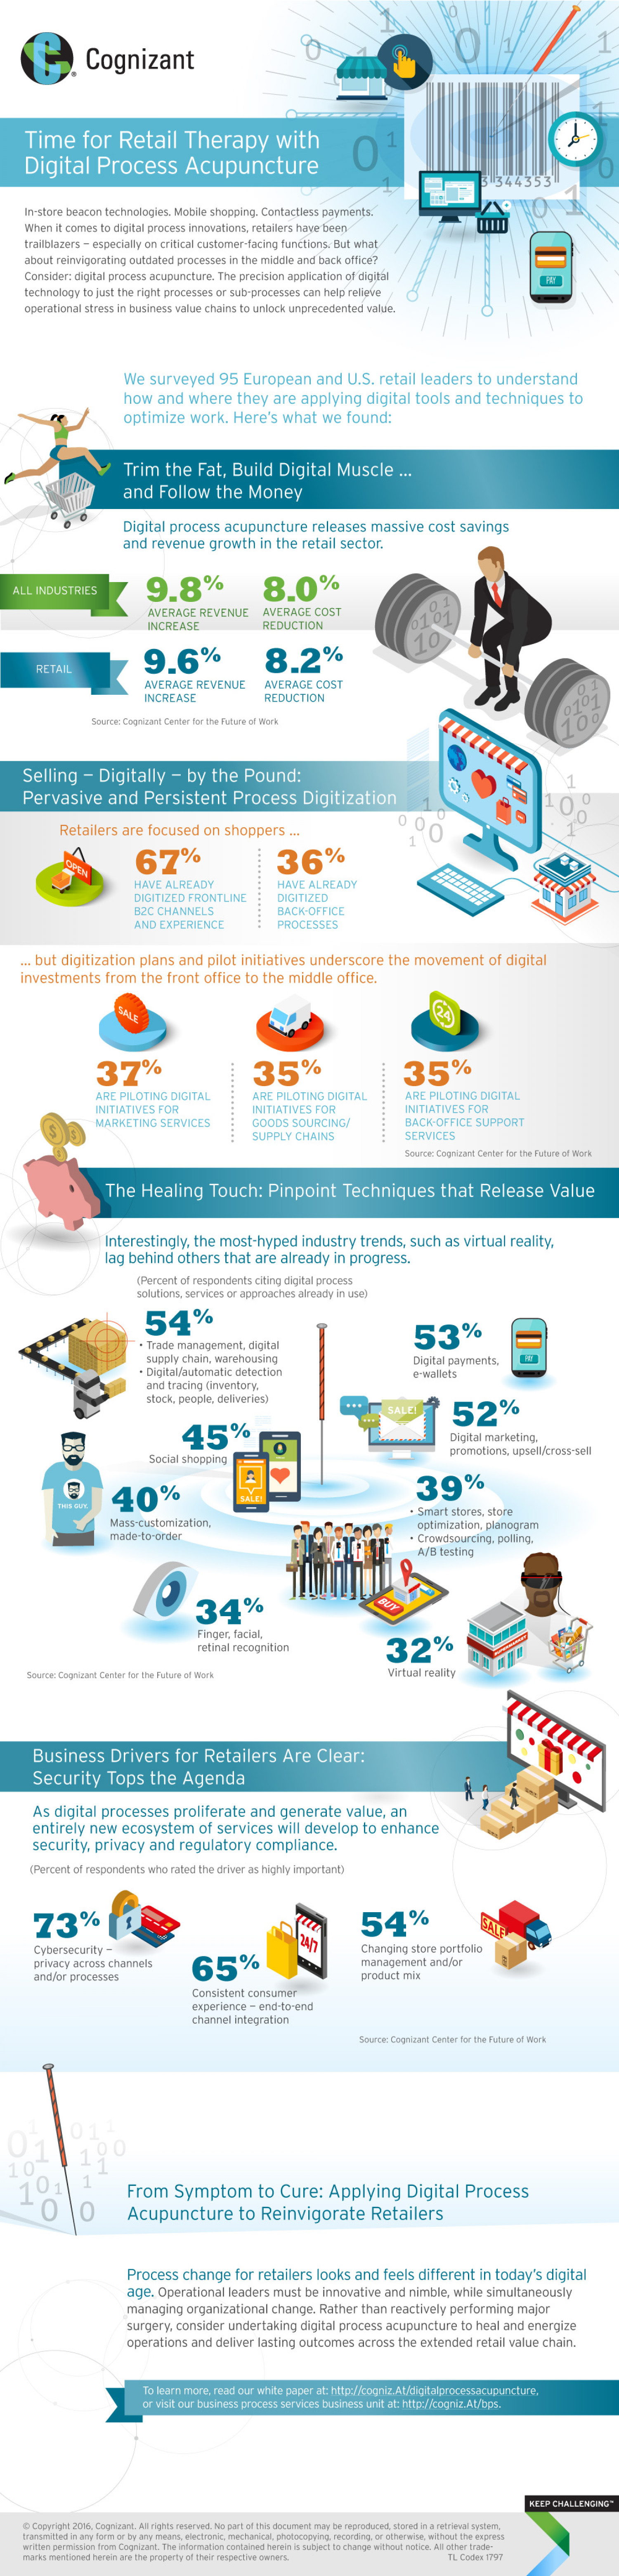 Time for Retail Therapy with Digital Process Acupuncture Infographic